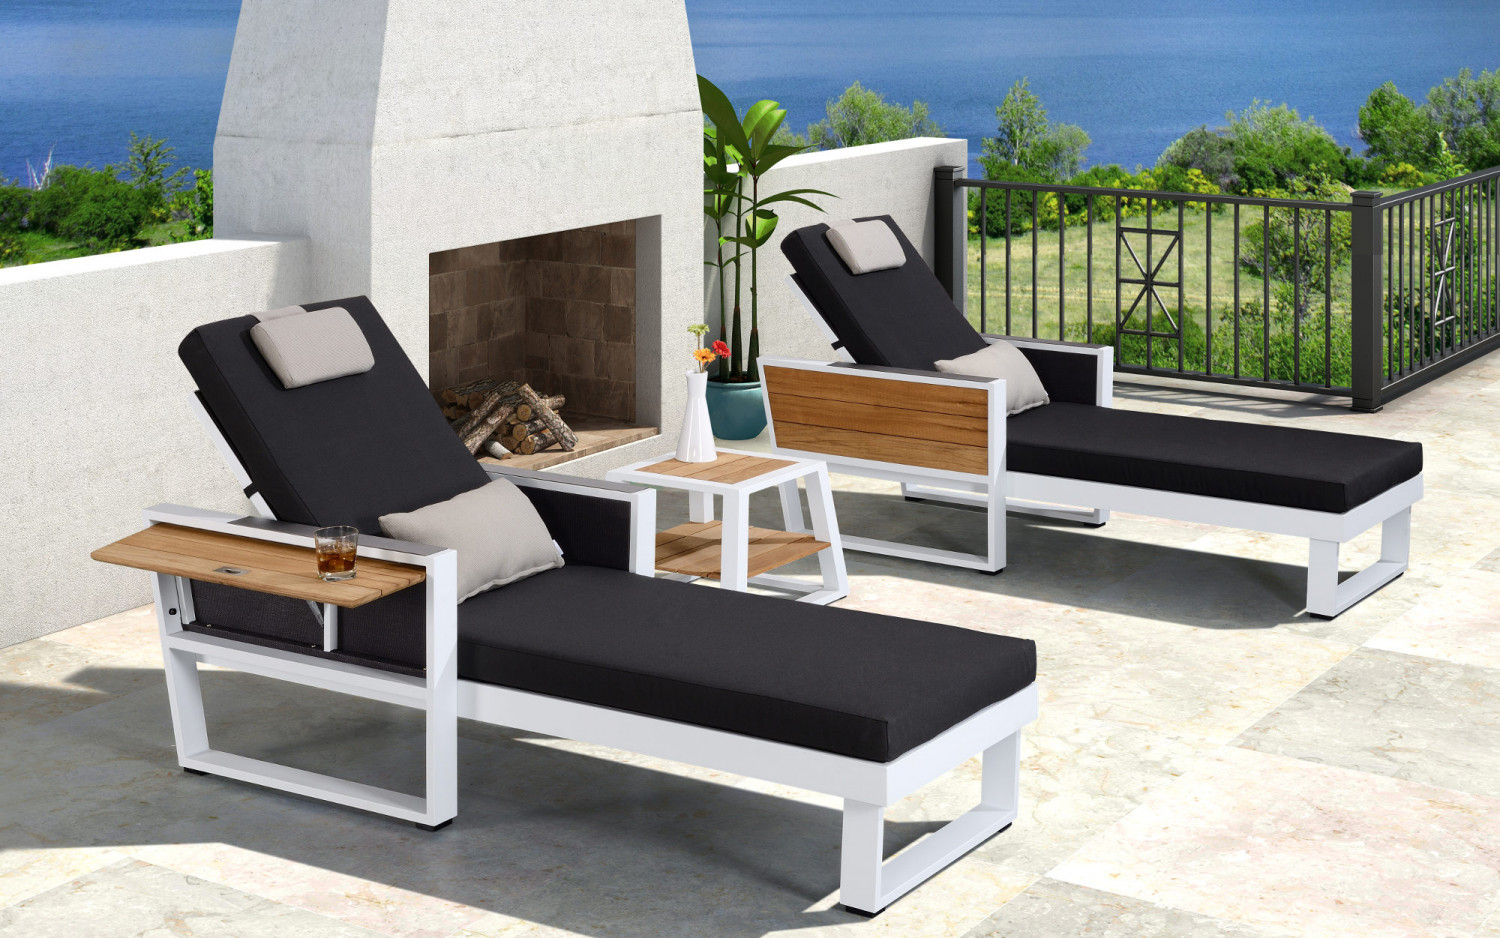 baidani alu garten lounge liege leros 2er set baidani shop. Black Bedroom Furniture Sets. Home Design Ideas